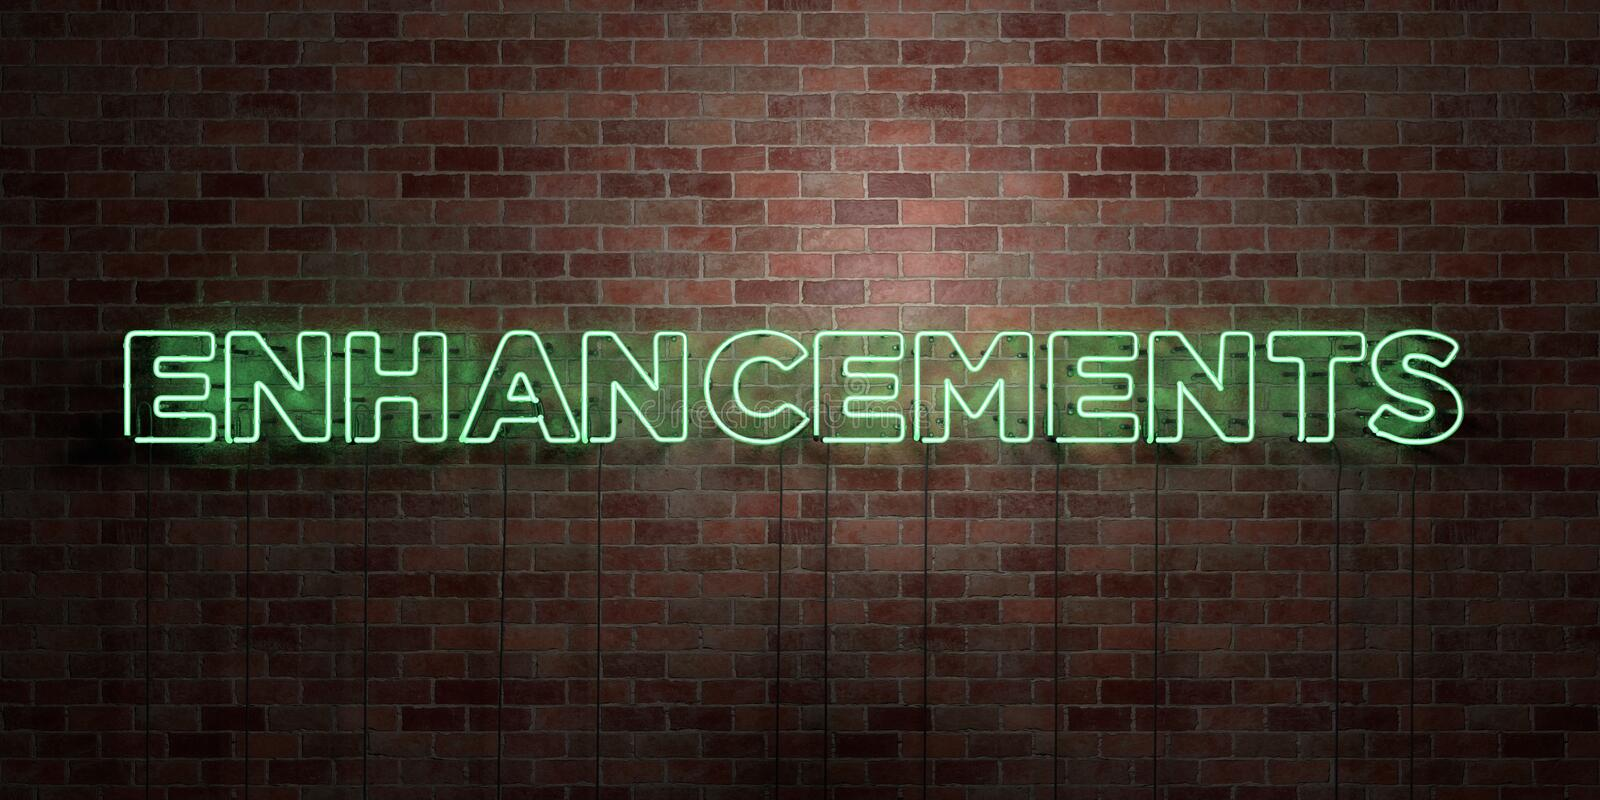 ENHANCEMENTS - fluorescent Neon tube Sign on brickwork - Front view - 3D rendered royalty free stock picture. Can be used for online banner ads and direct stock illustration